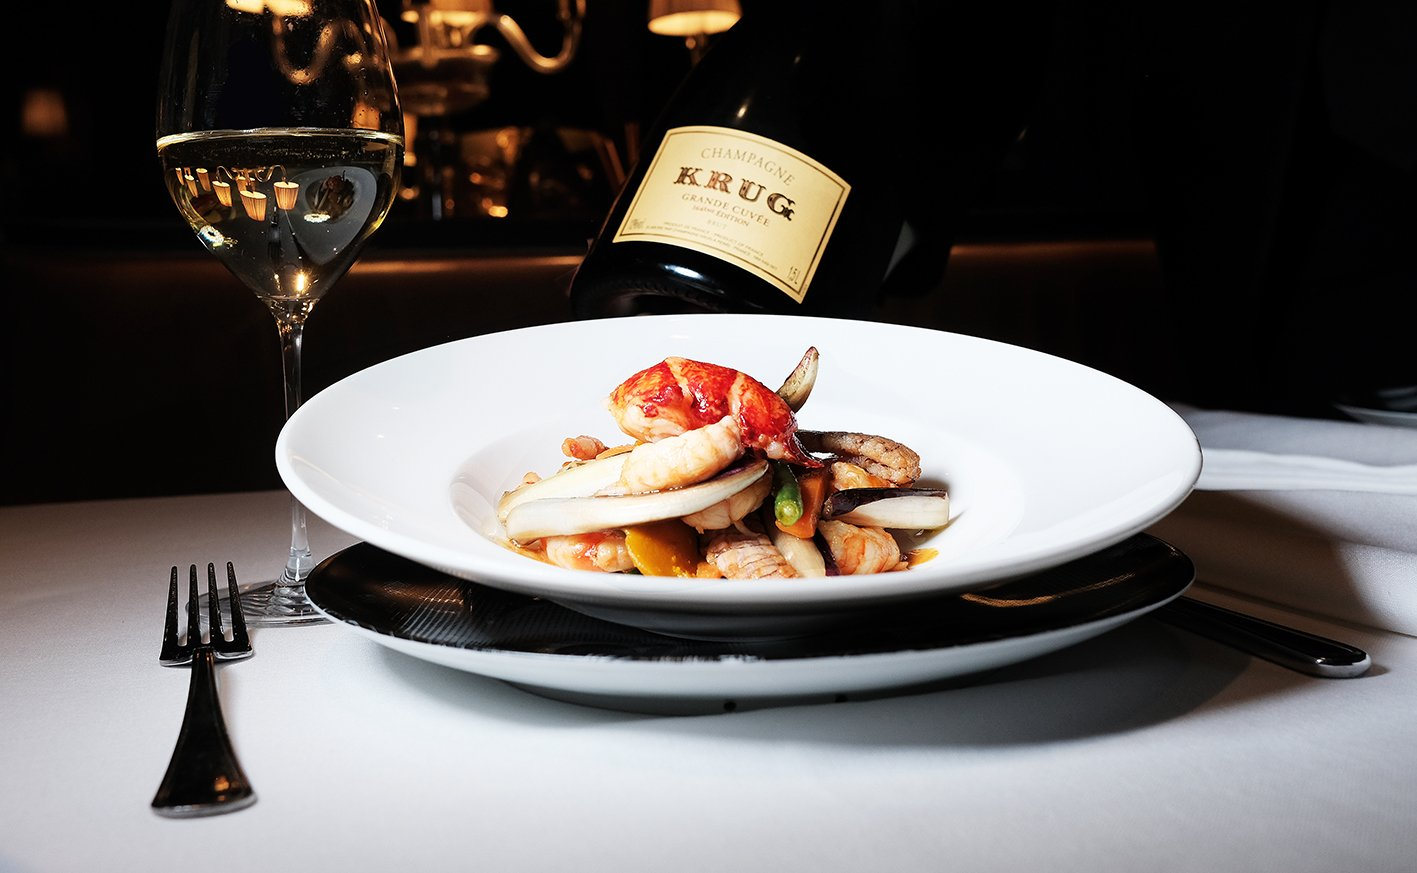 Krug and fish